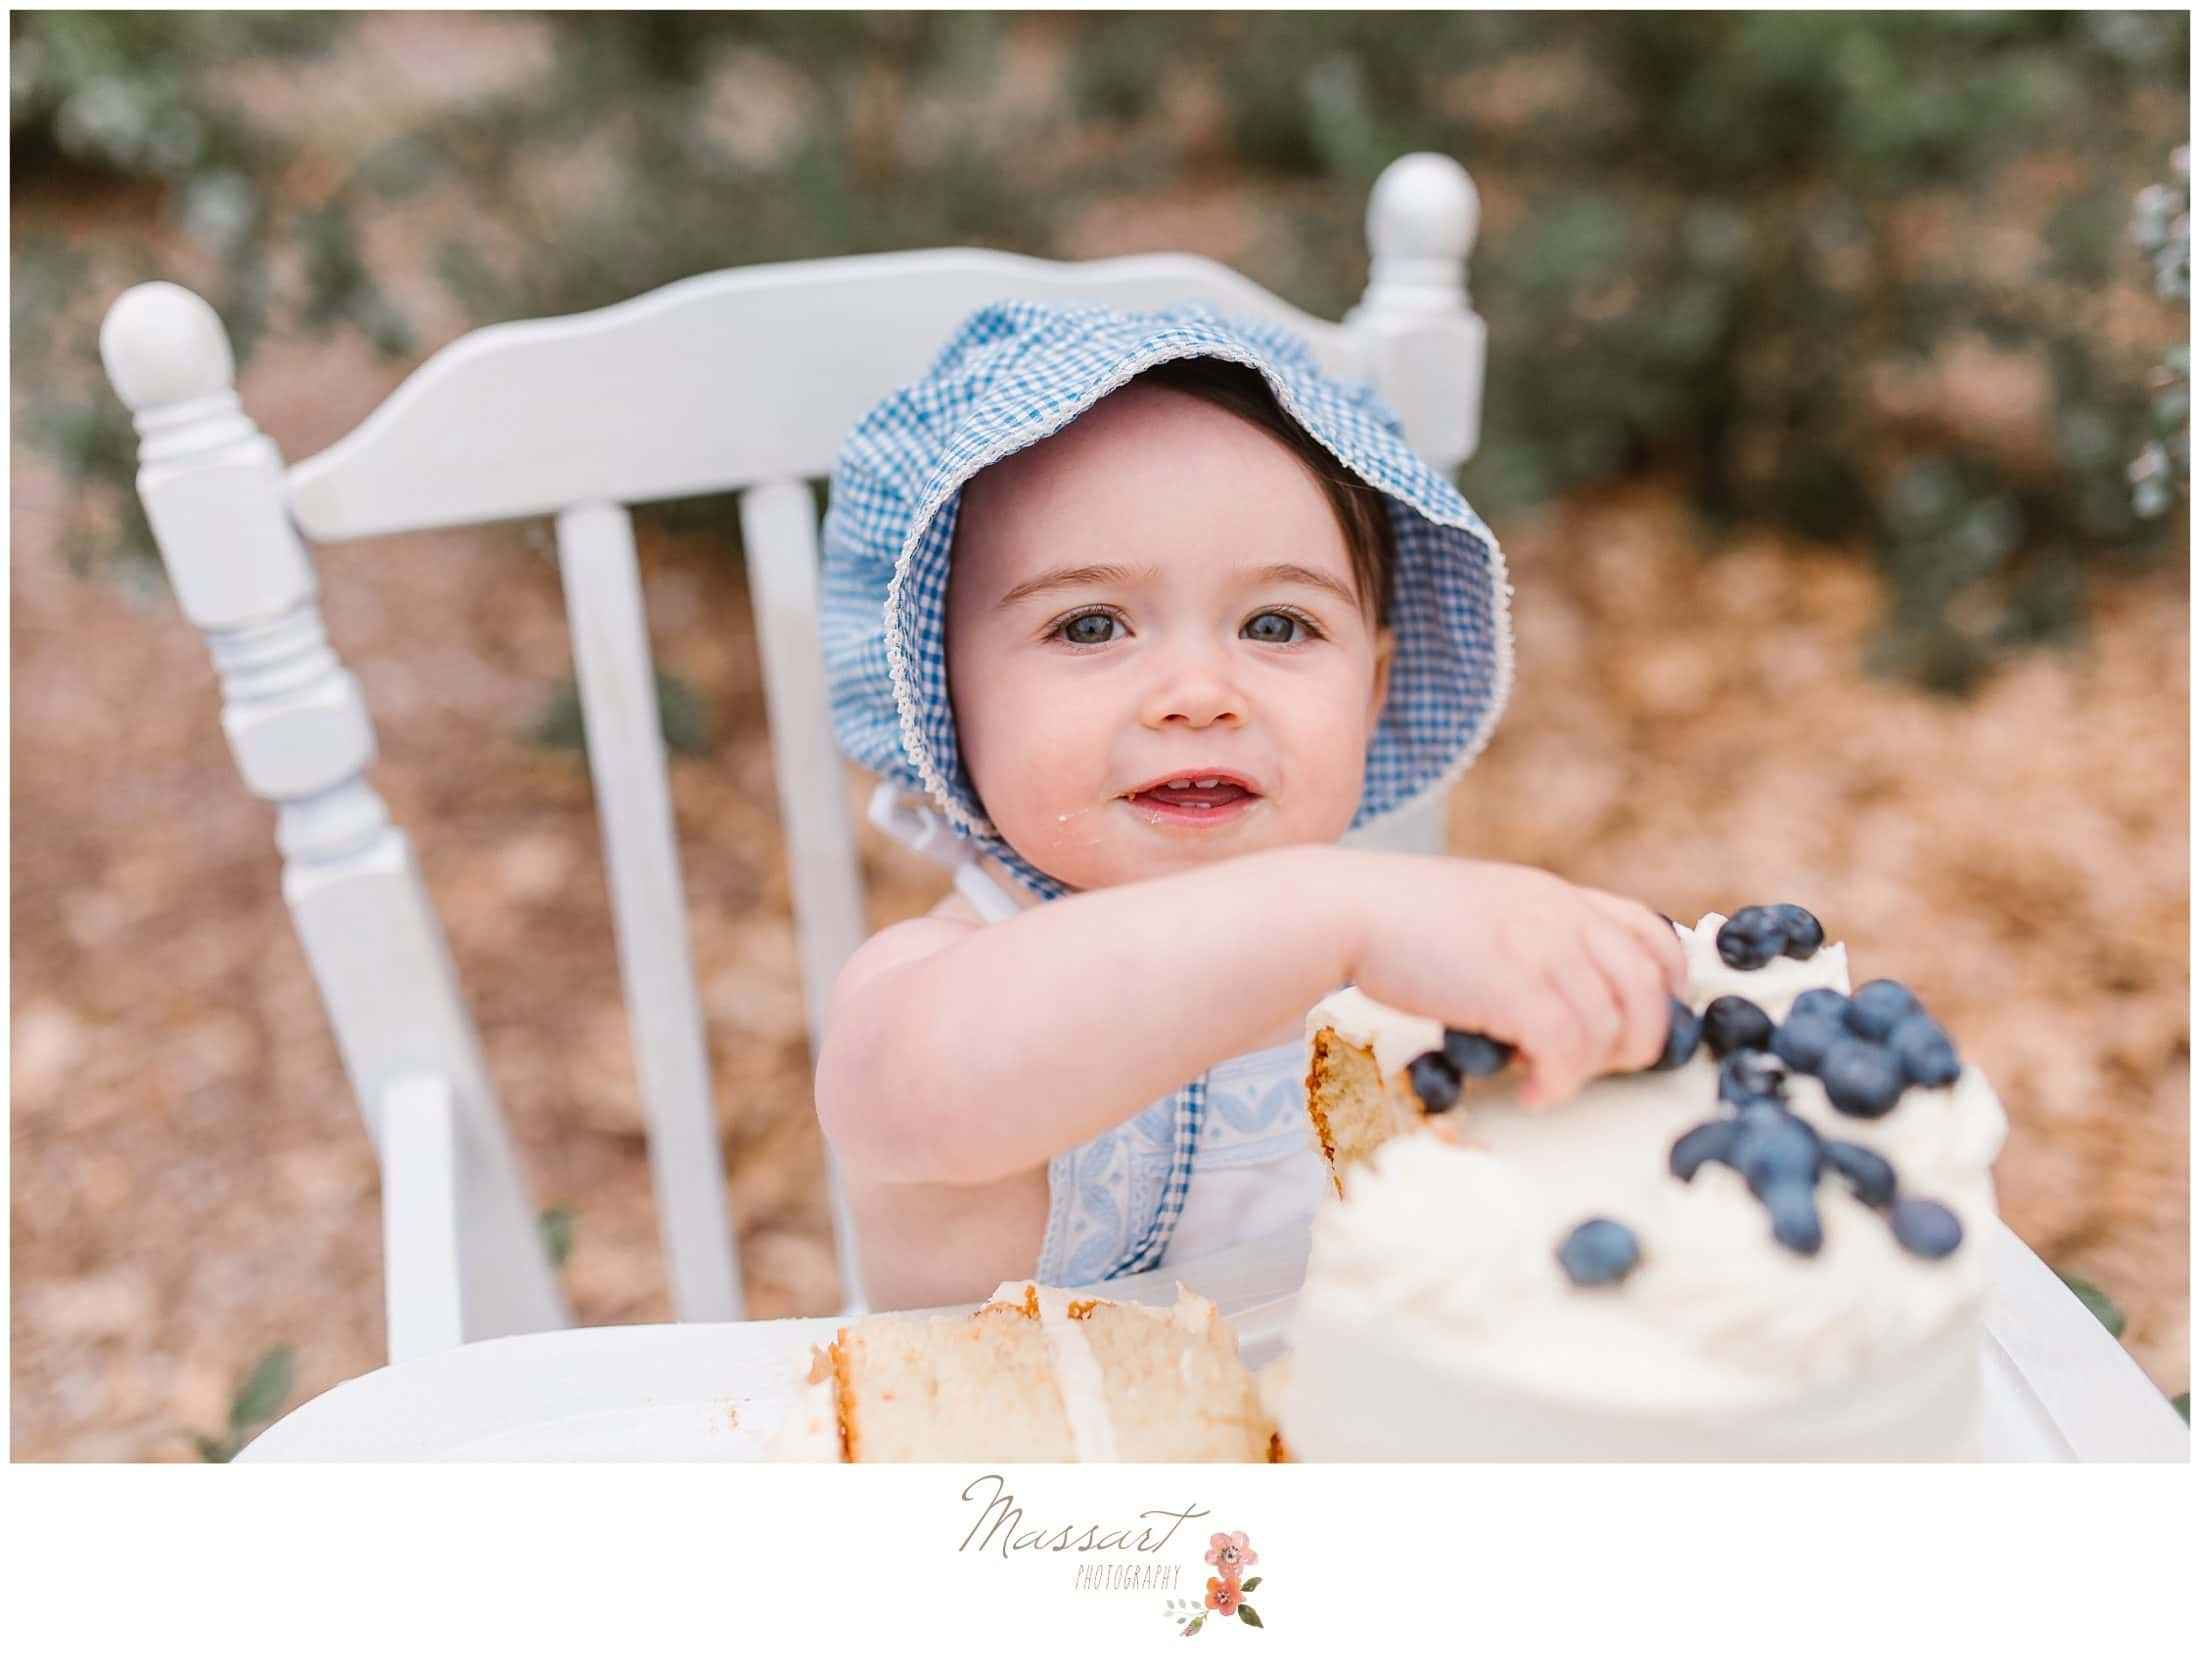 Baby smashes her blueberry cake at the blueberry farm during her cake smash session photographed by Massart Photography Rhode Island